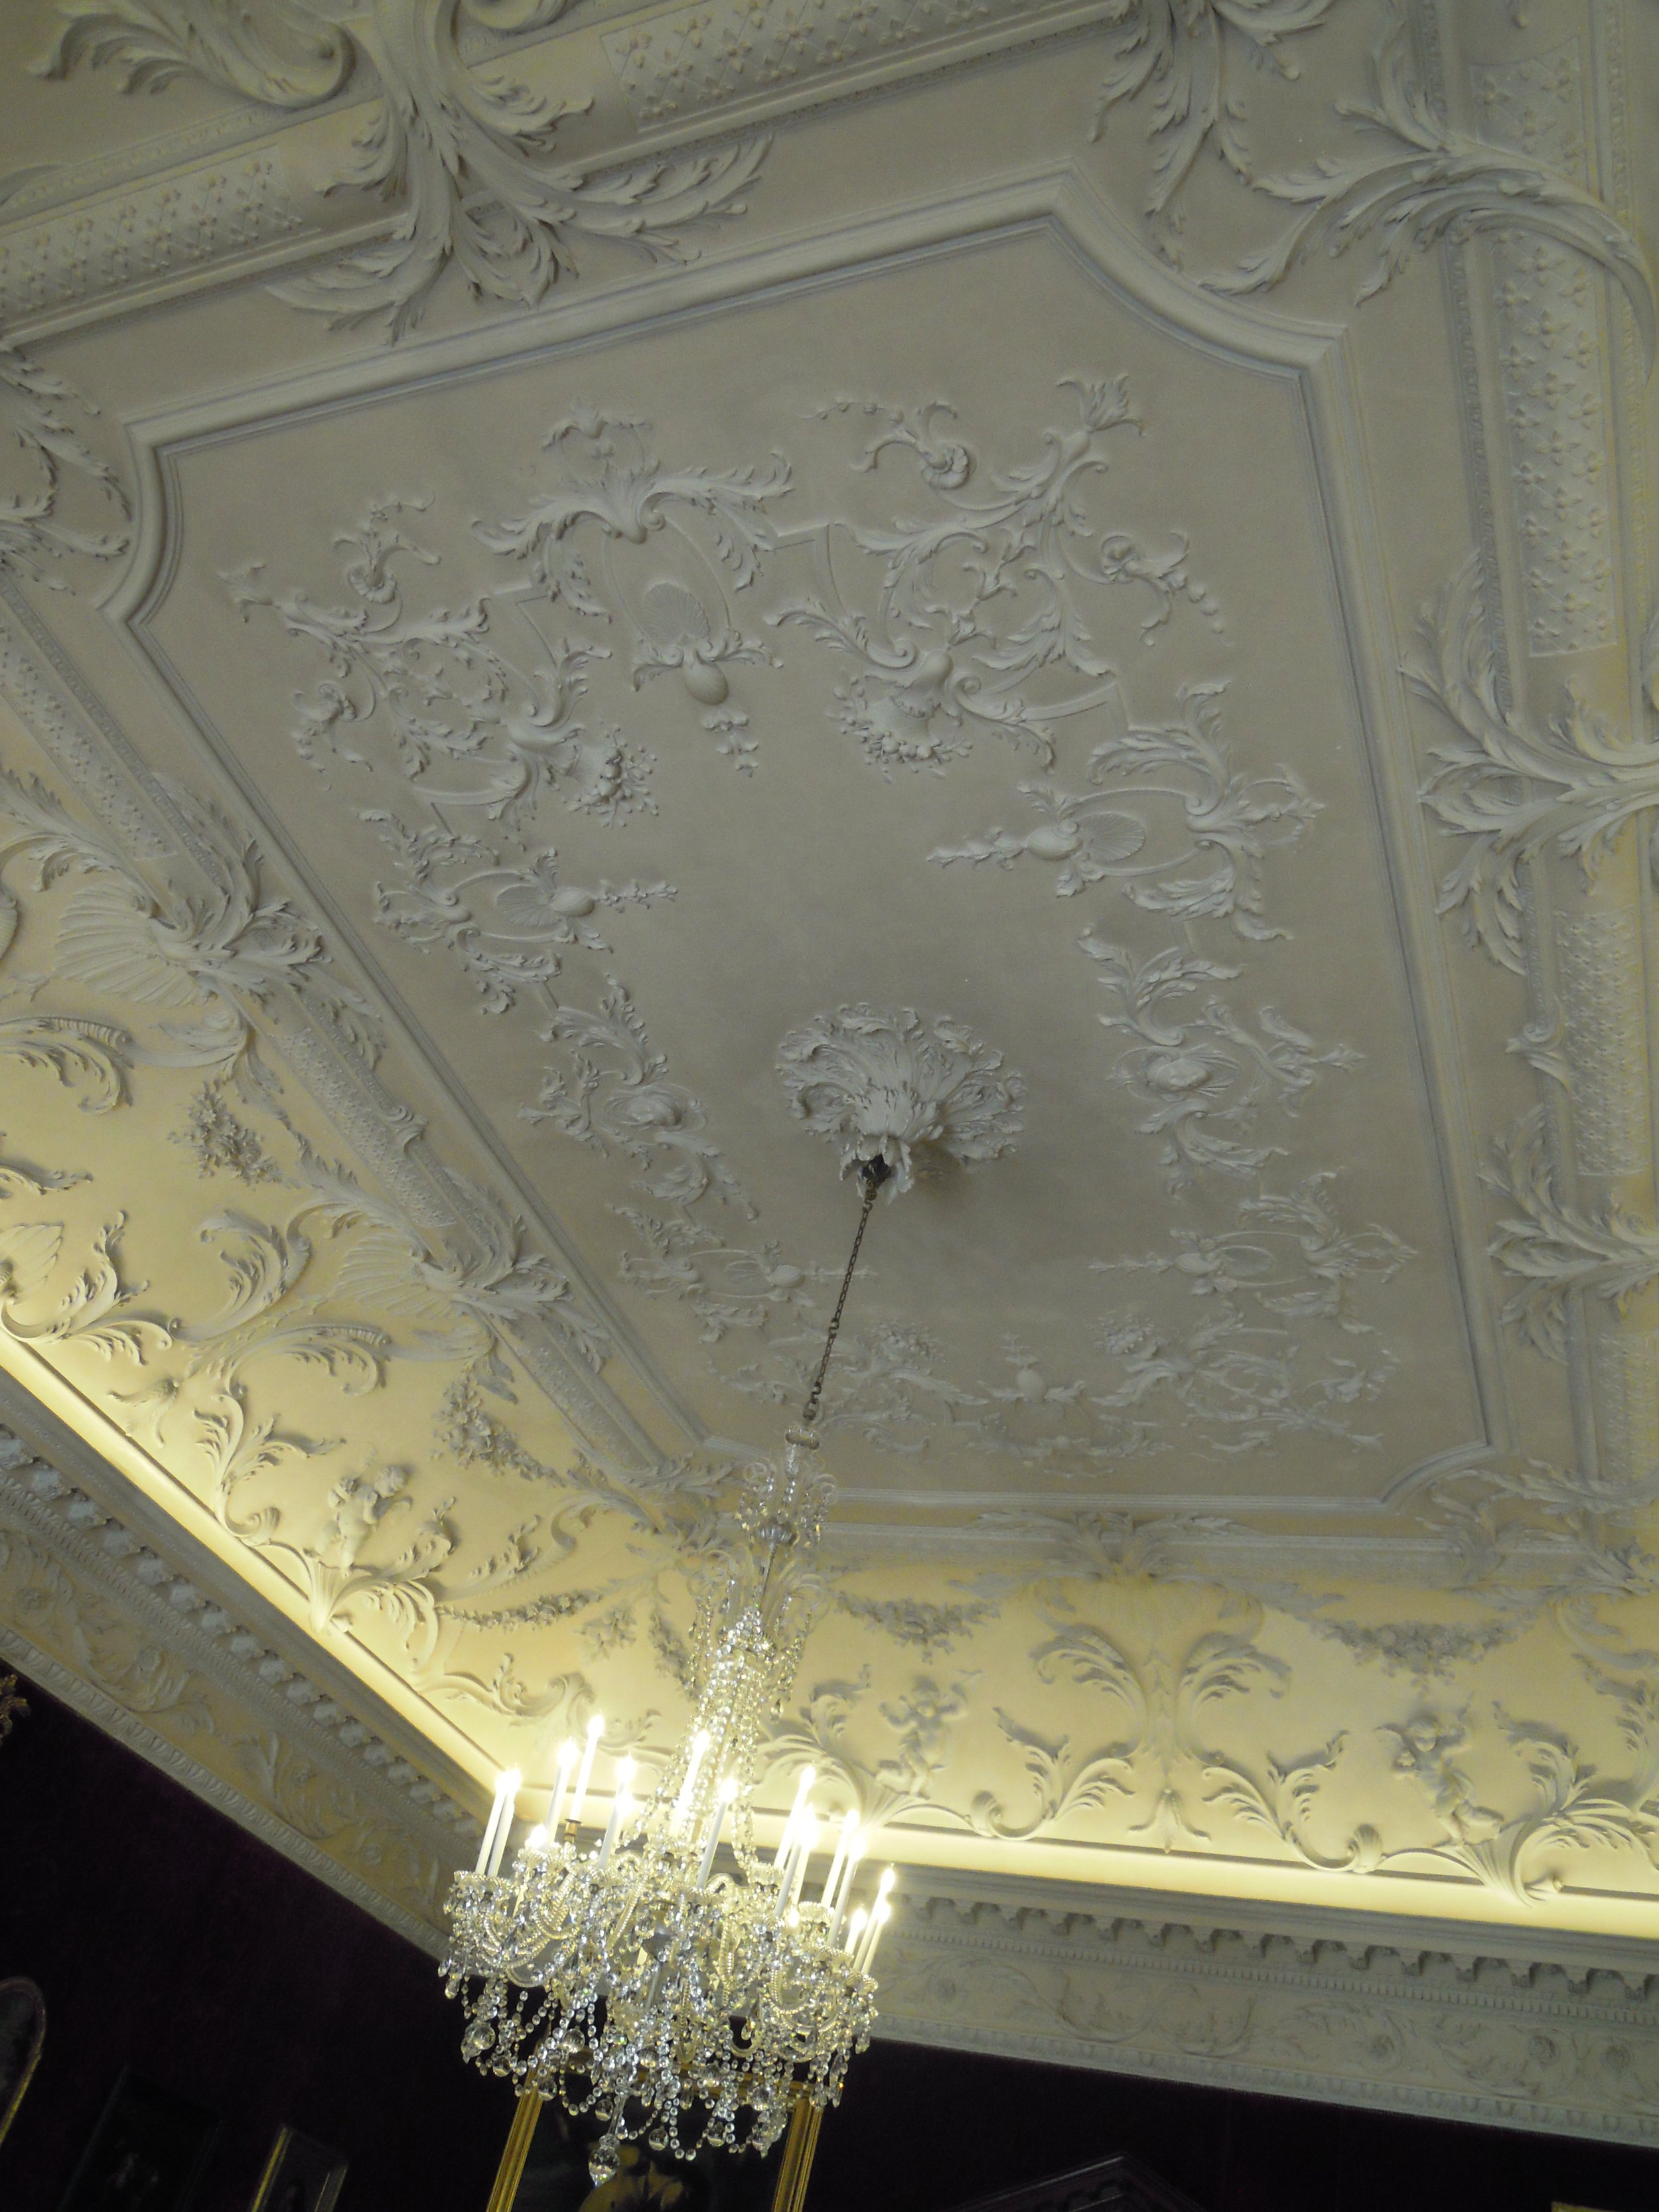 Another ceiling